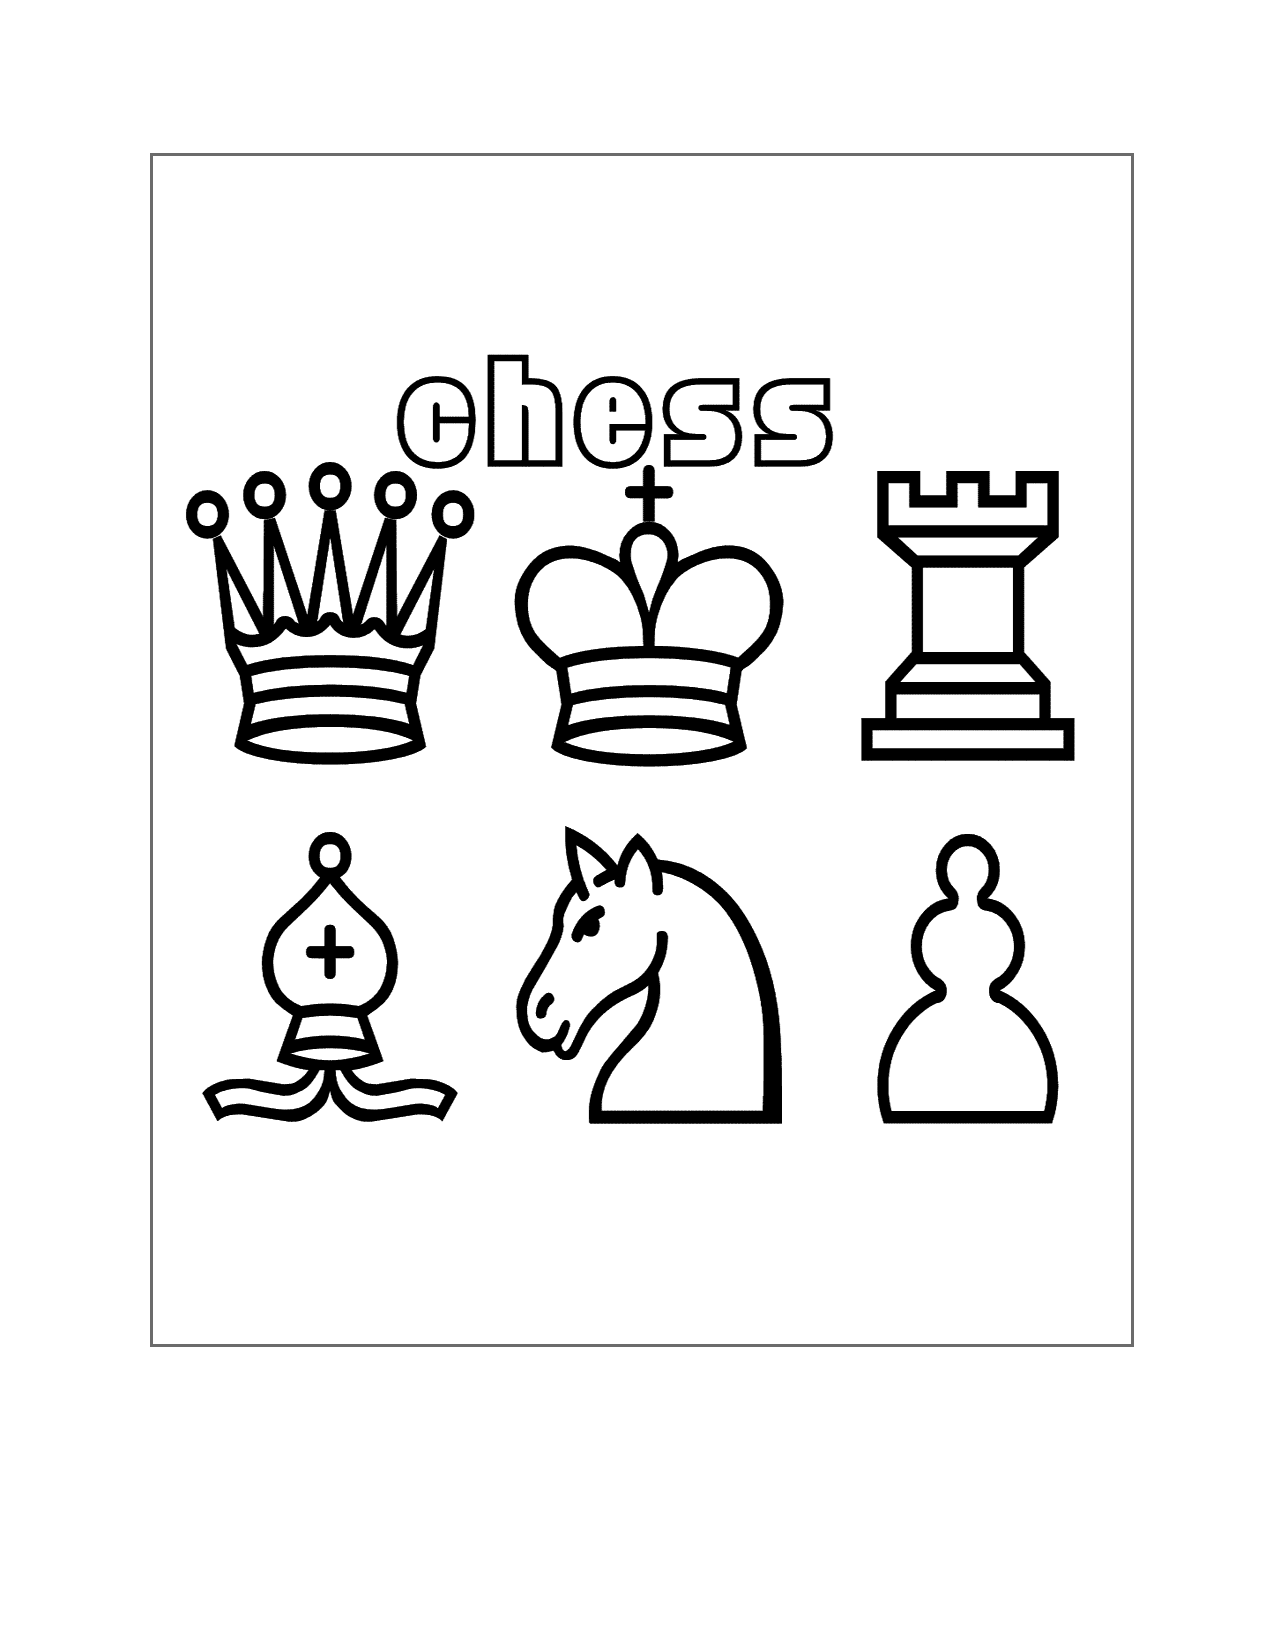 Chess Pieces Coloring Page Printable